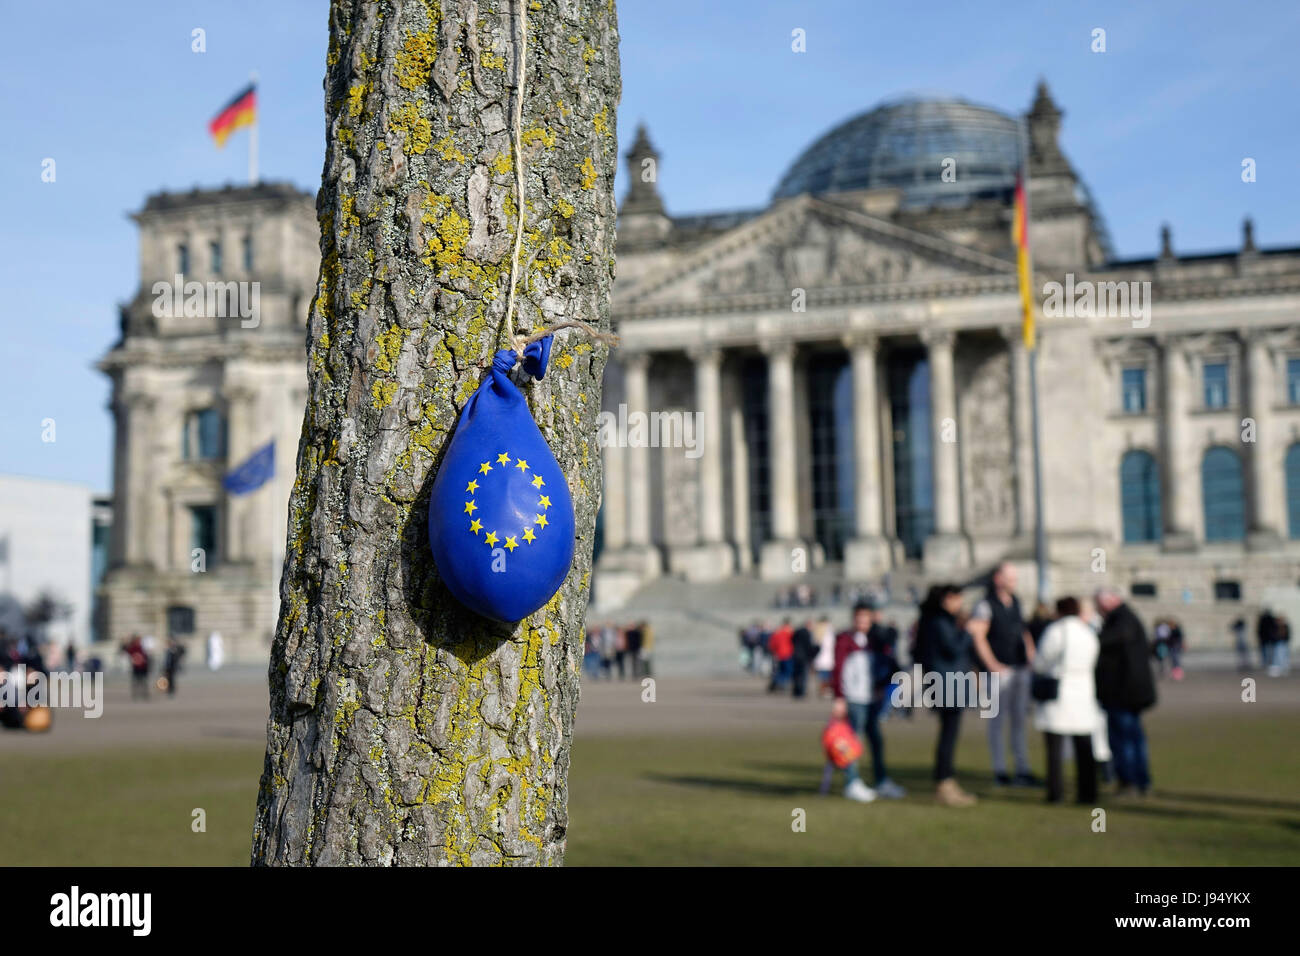 ILLUSTRATION - A deflated blue balloon emblazoned with the ring of stars that is the emblem of the European Union - Stock Image